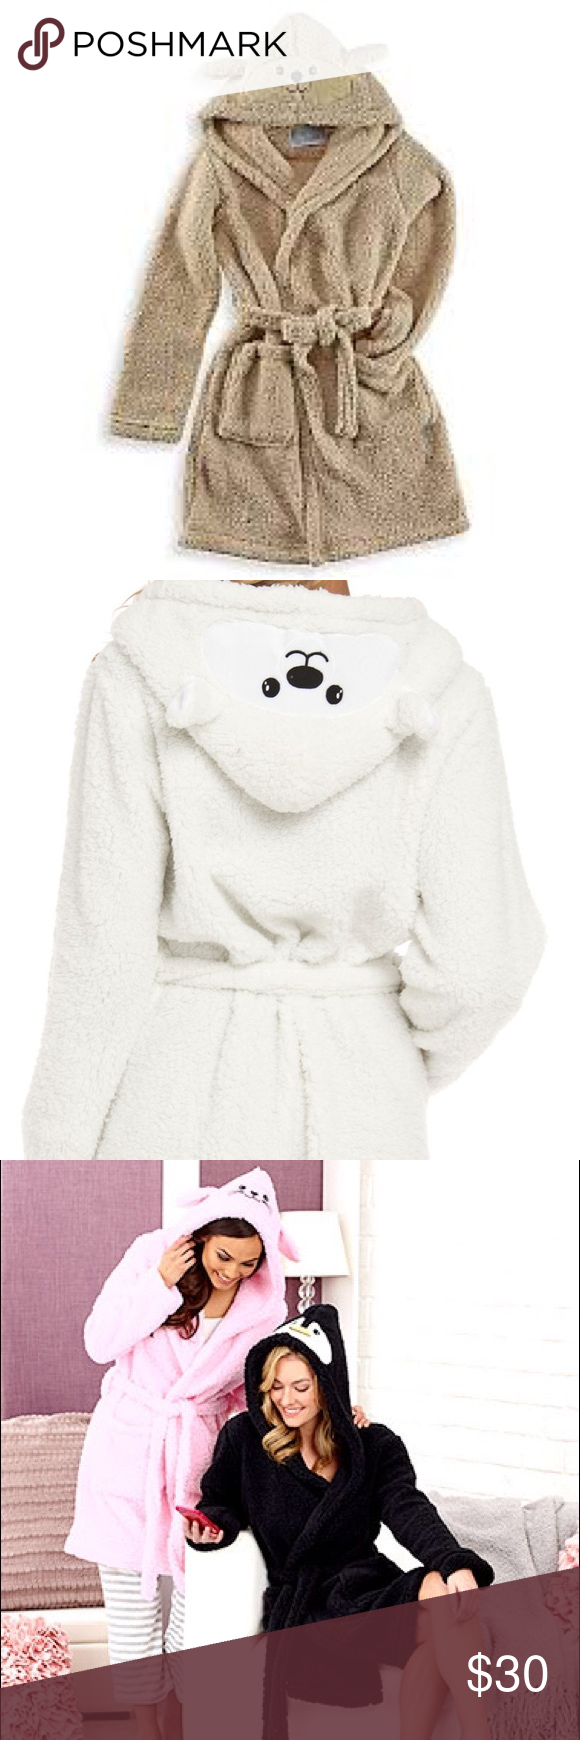 Tan puppy 🐶 cozy critters robe and white bear Brand new 1 tan puppy 🐶 and 1 white bear 1 black penguin cozy critters robes they are very soft and comfortable ✨ Other